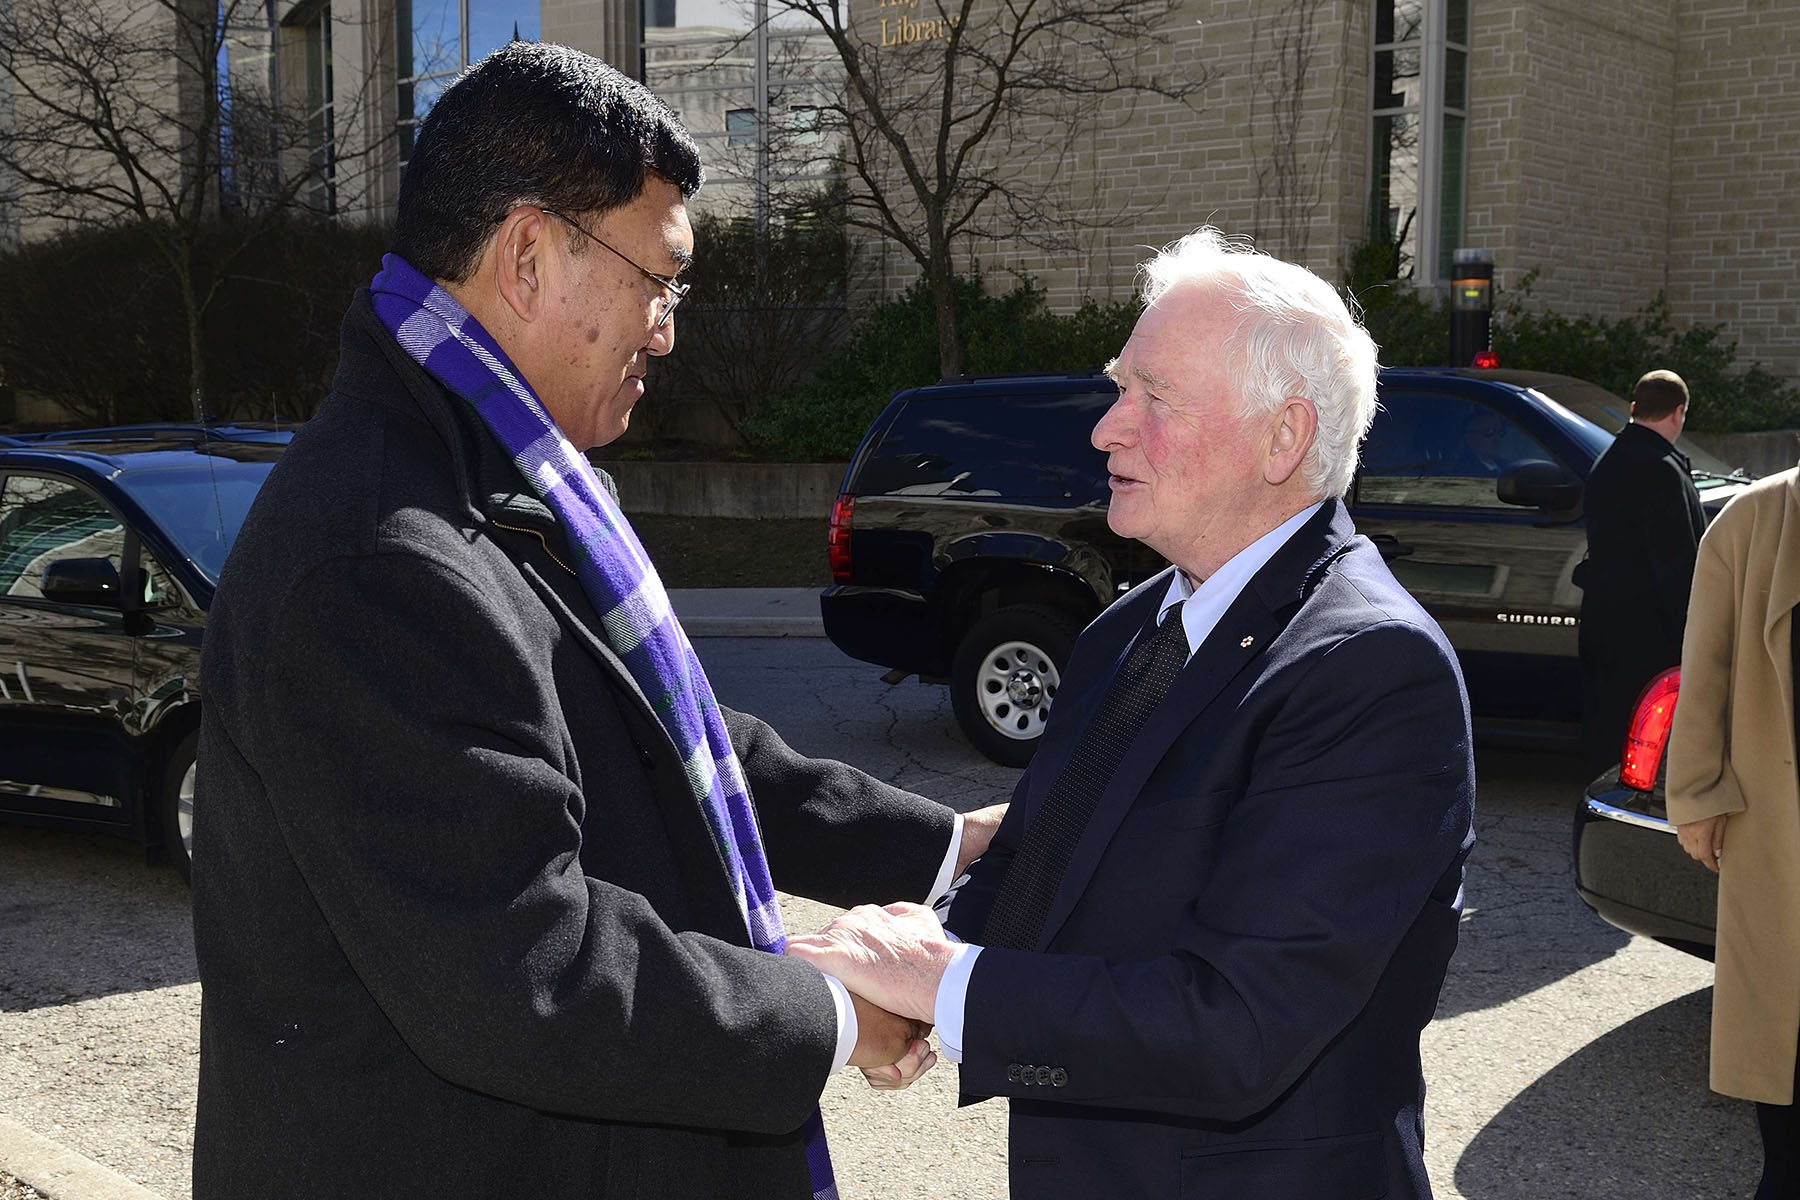 His Excellency the Right Honourable David Johnston started his first day in London by visiting Western University's Robarts Research Institute. Mr. Amit Chakma, President and Vice-Chancellor of the University of Western Ontario, welcomed His Excellency.